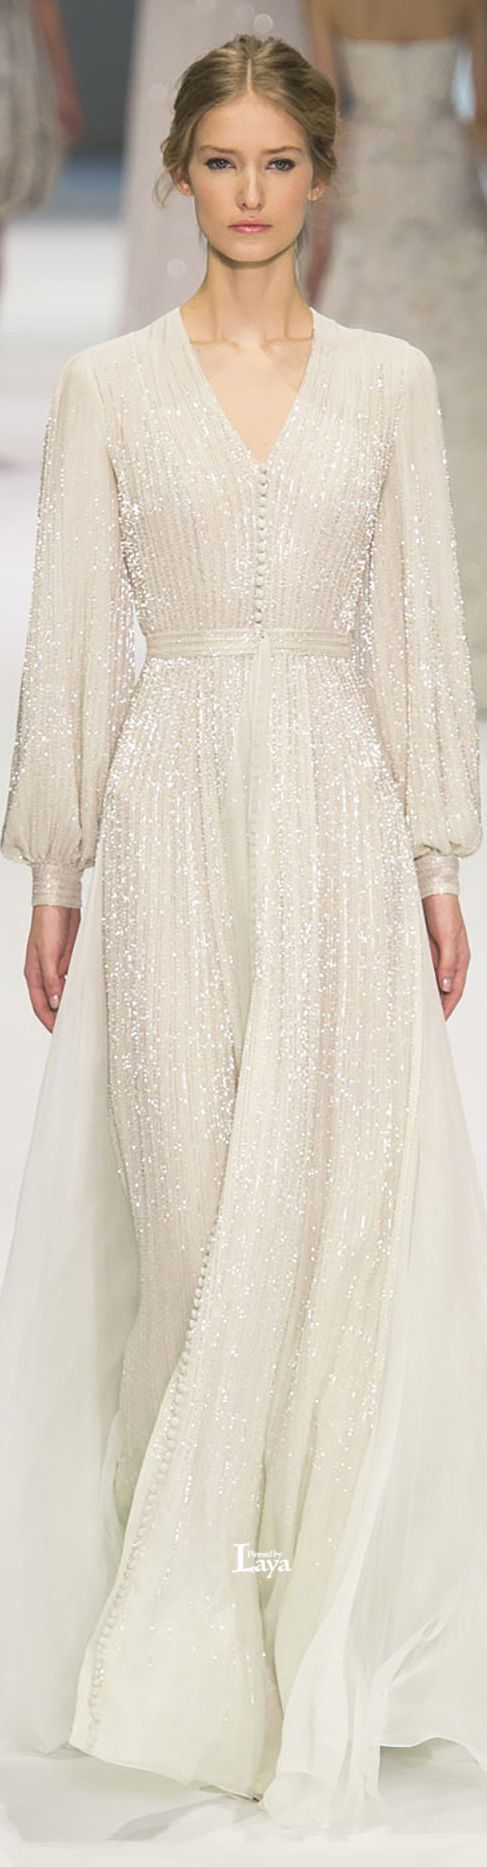 RALPH & RUSSO Spring-Summer 2015 COUTURE